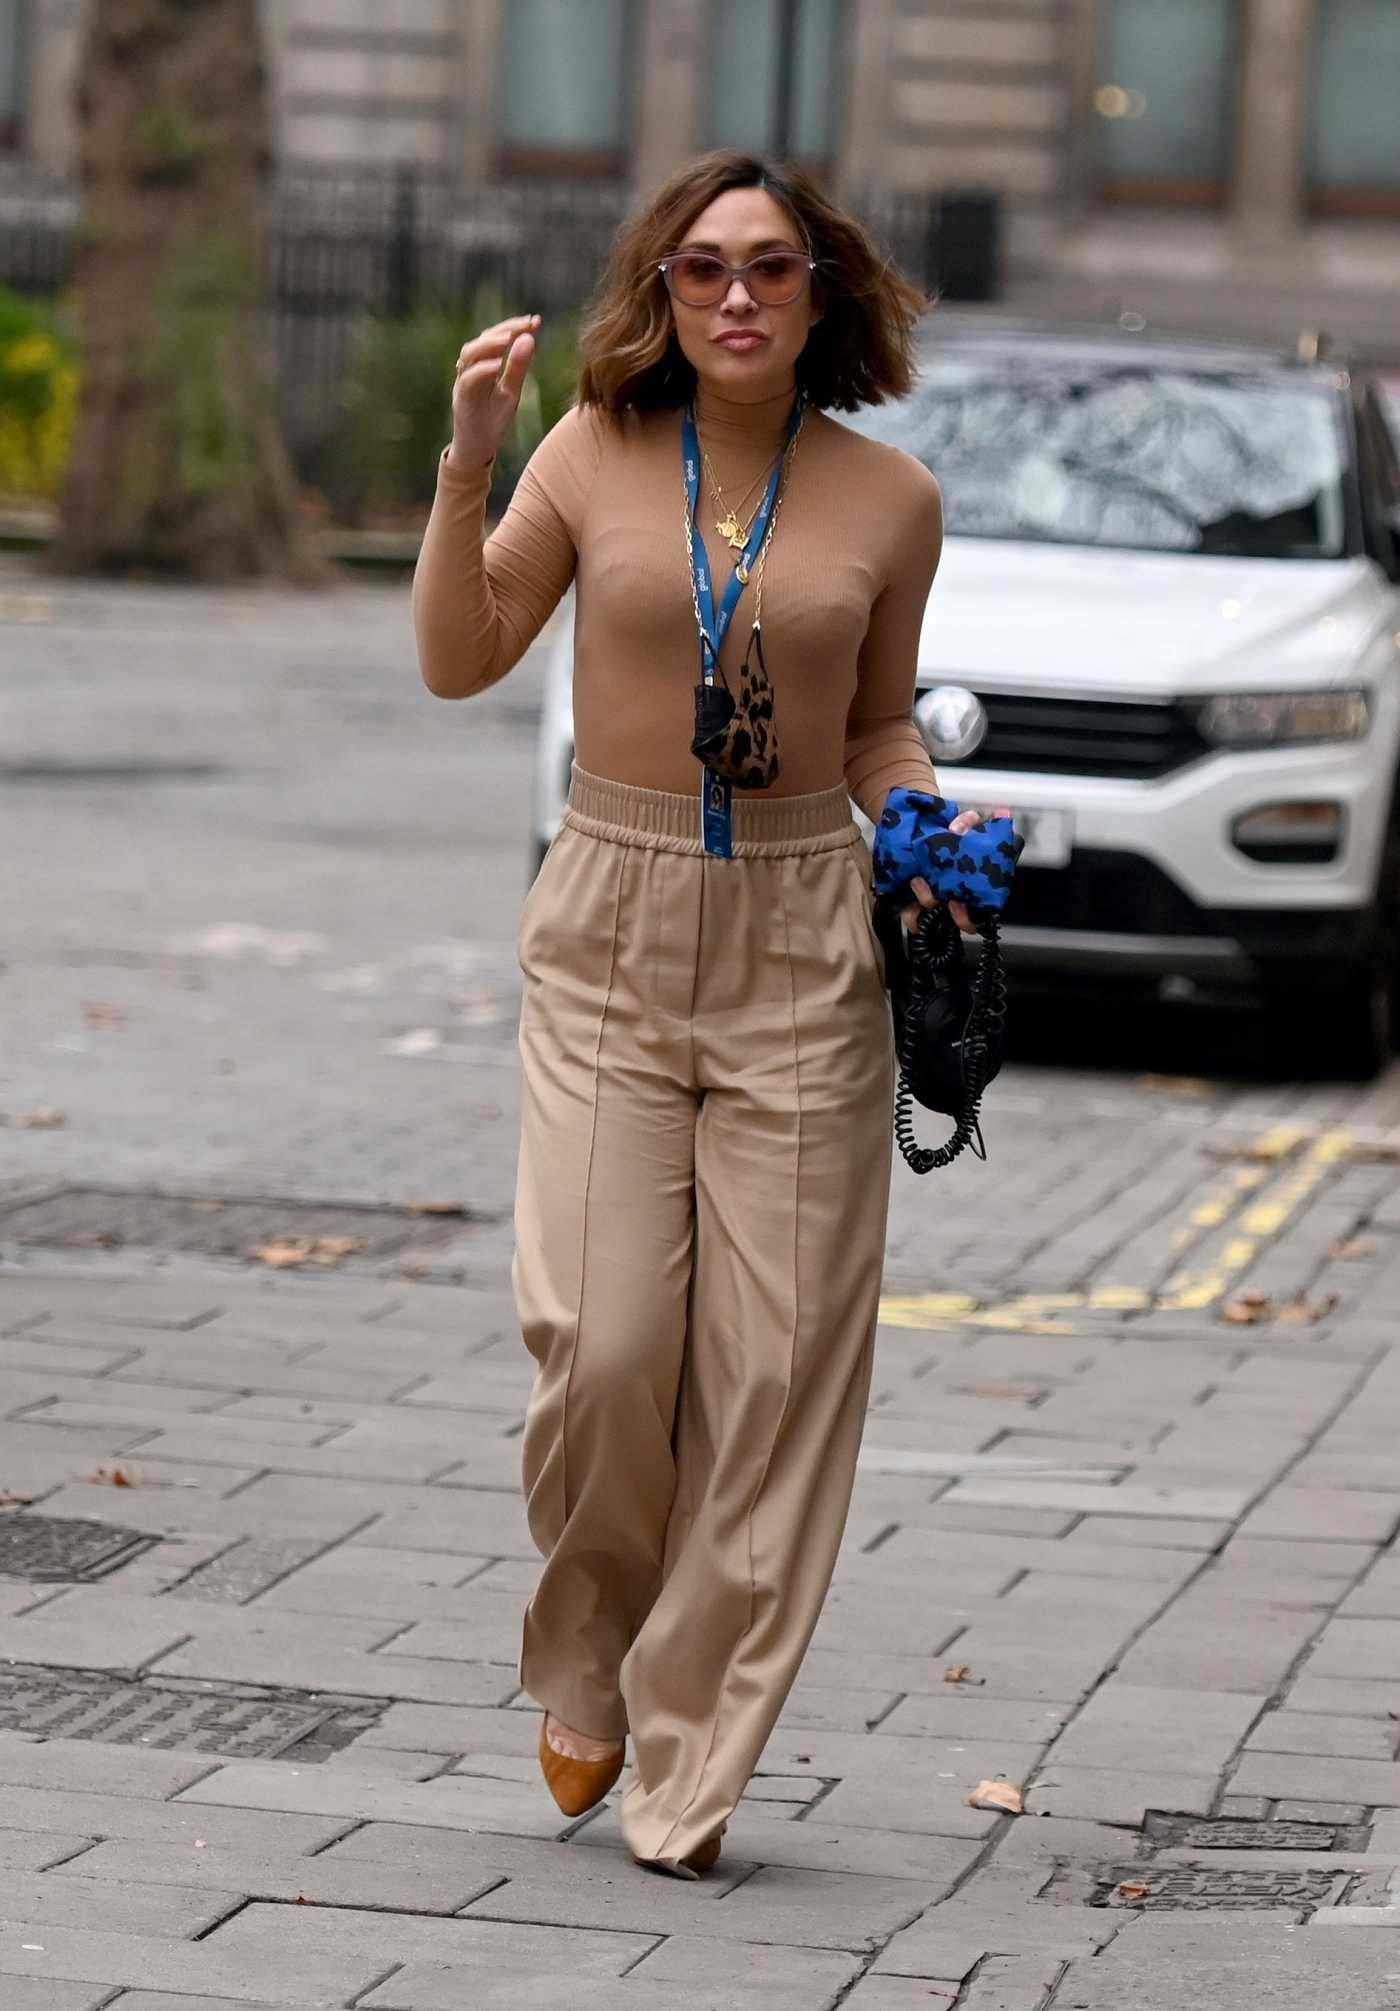 Myleene Klass in a Beige Pants Arrives at the Global Radio in London 12/22/2020